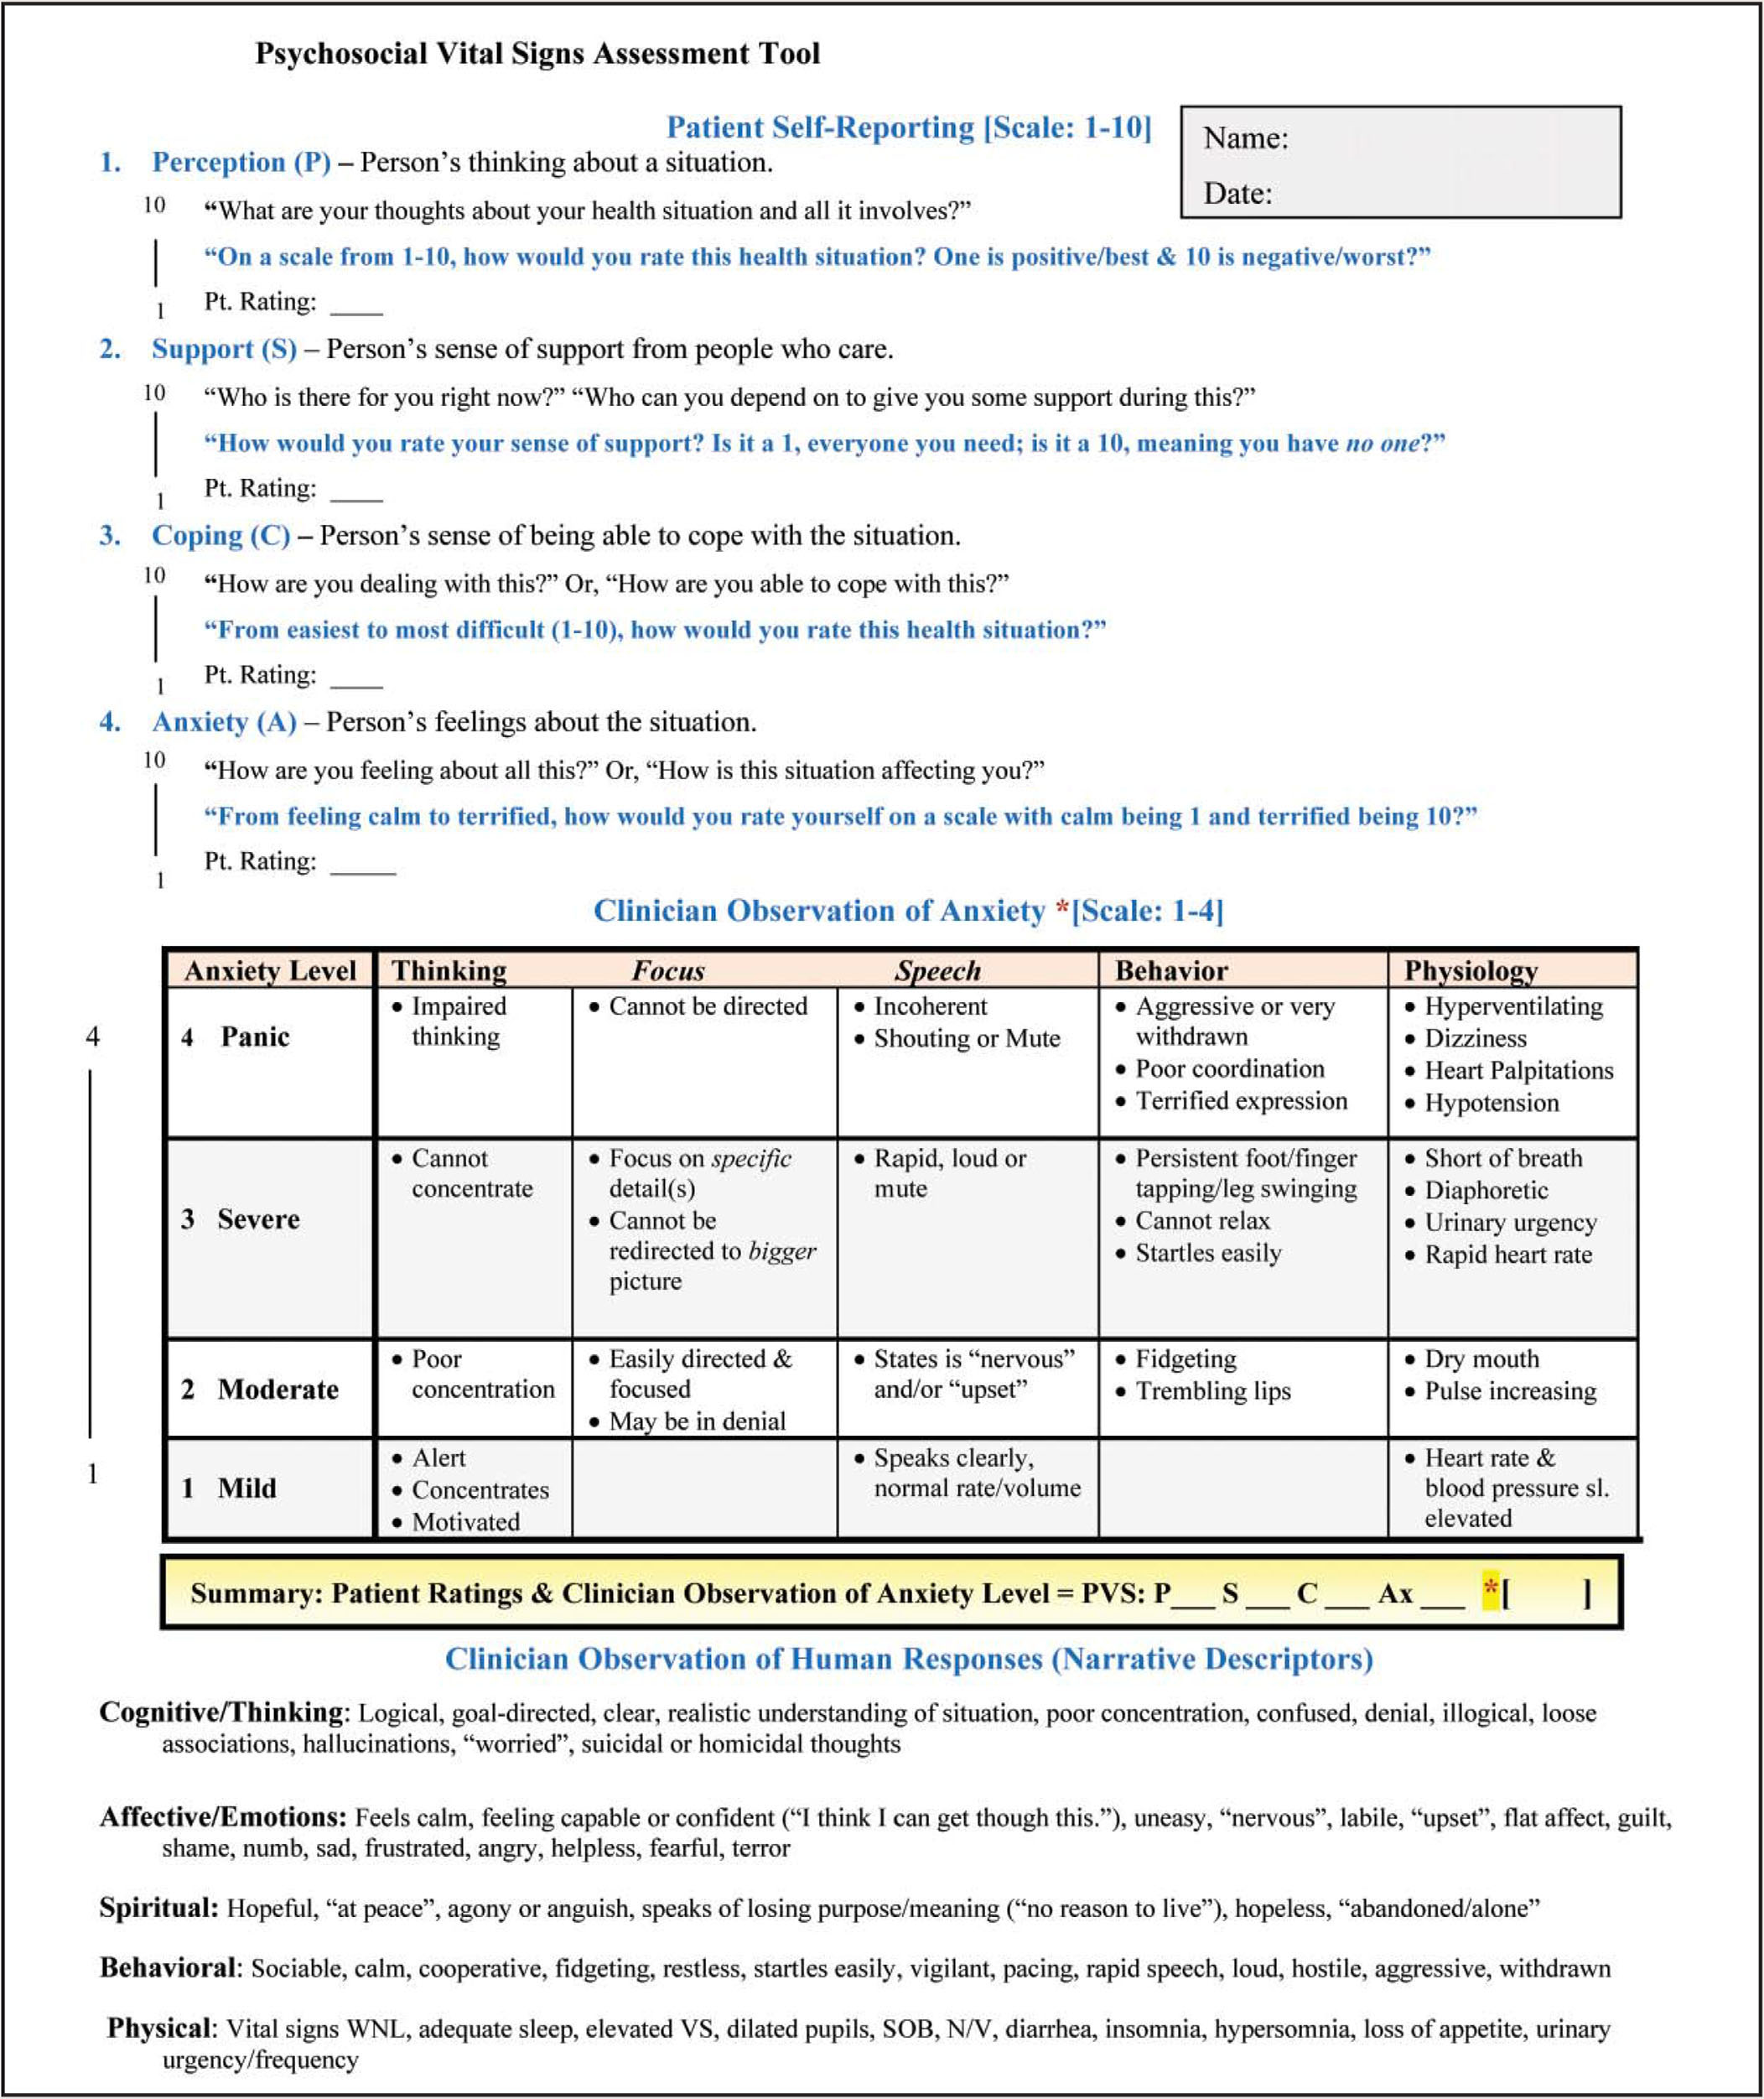 Reliability Testing of the Psychosocial Vital Signs Assessment Tool – Psychosocial Assessment Form